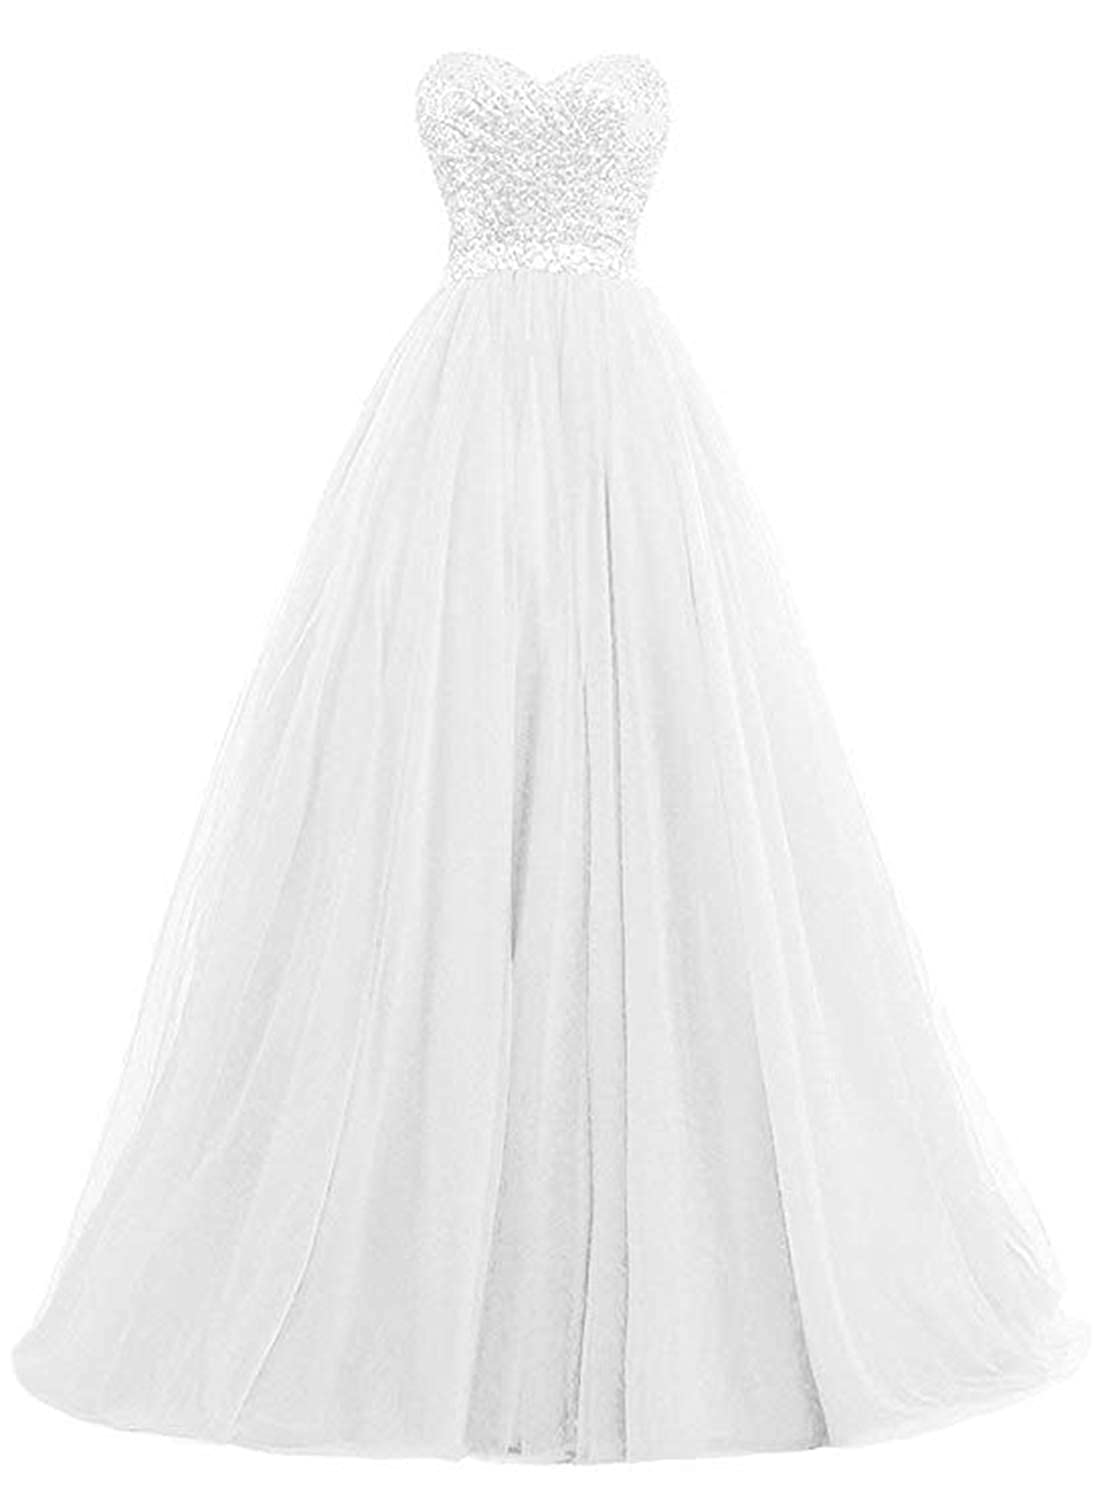 White olise bridal Sexy Sweetheart Women's A Line Long Prom Dresses Sequin Party Formal Dresses Ball Gowns